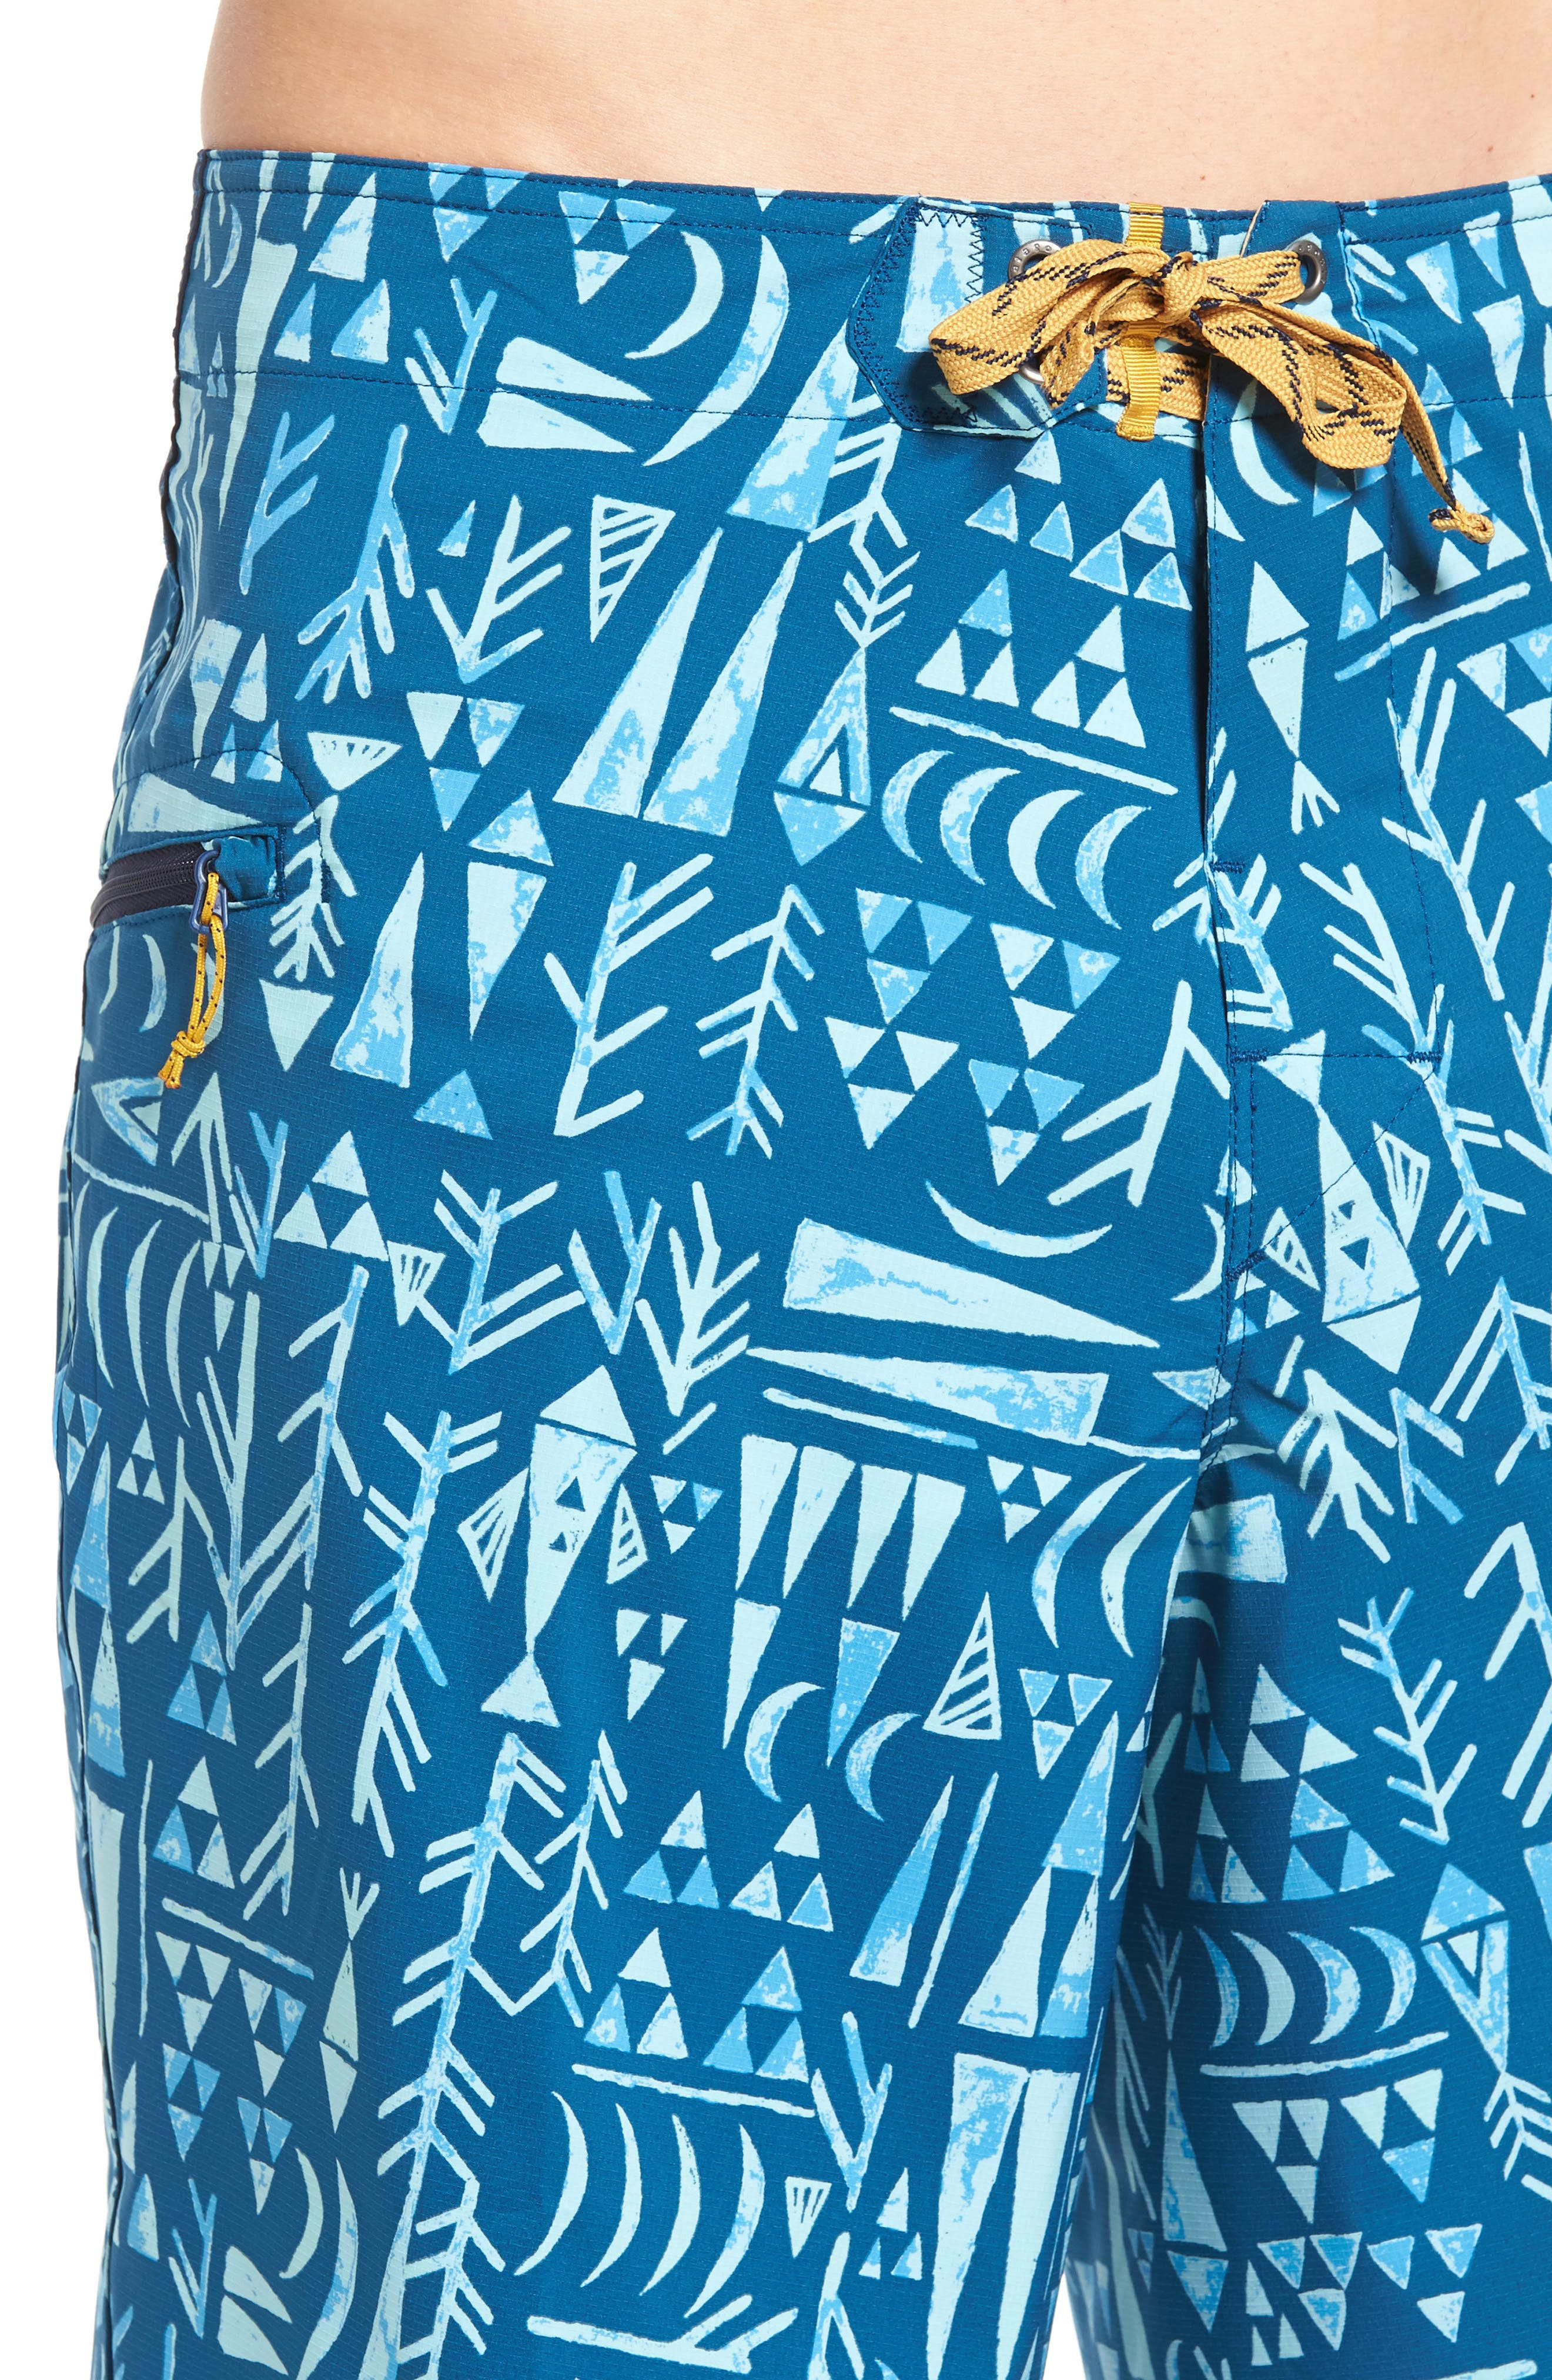 Stretch Planing Board Shorts,                             Alternate thumbnail 21, color,